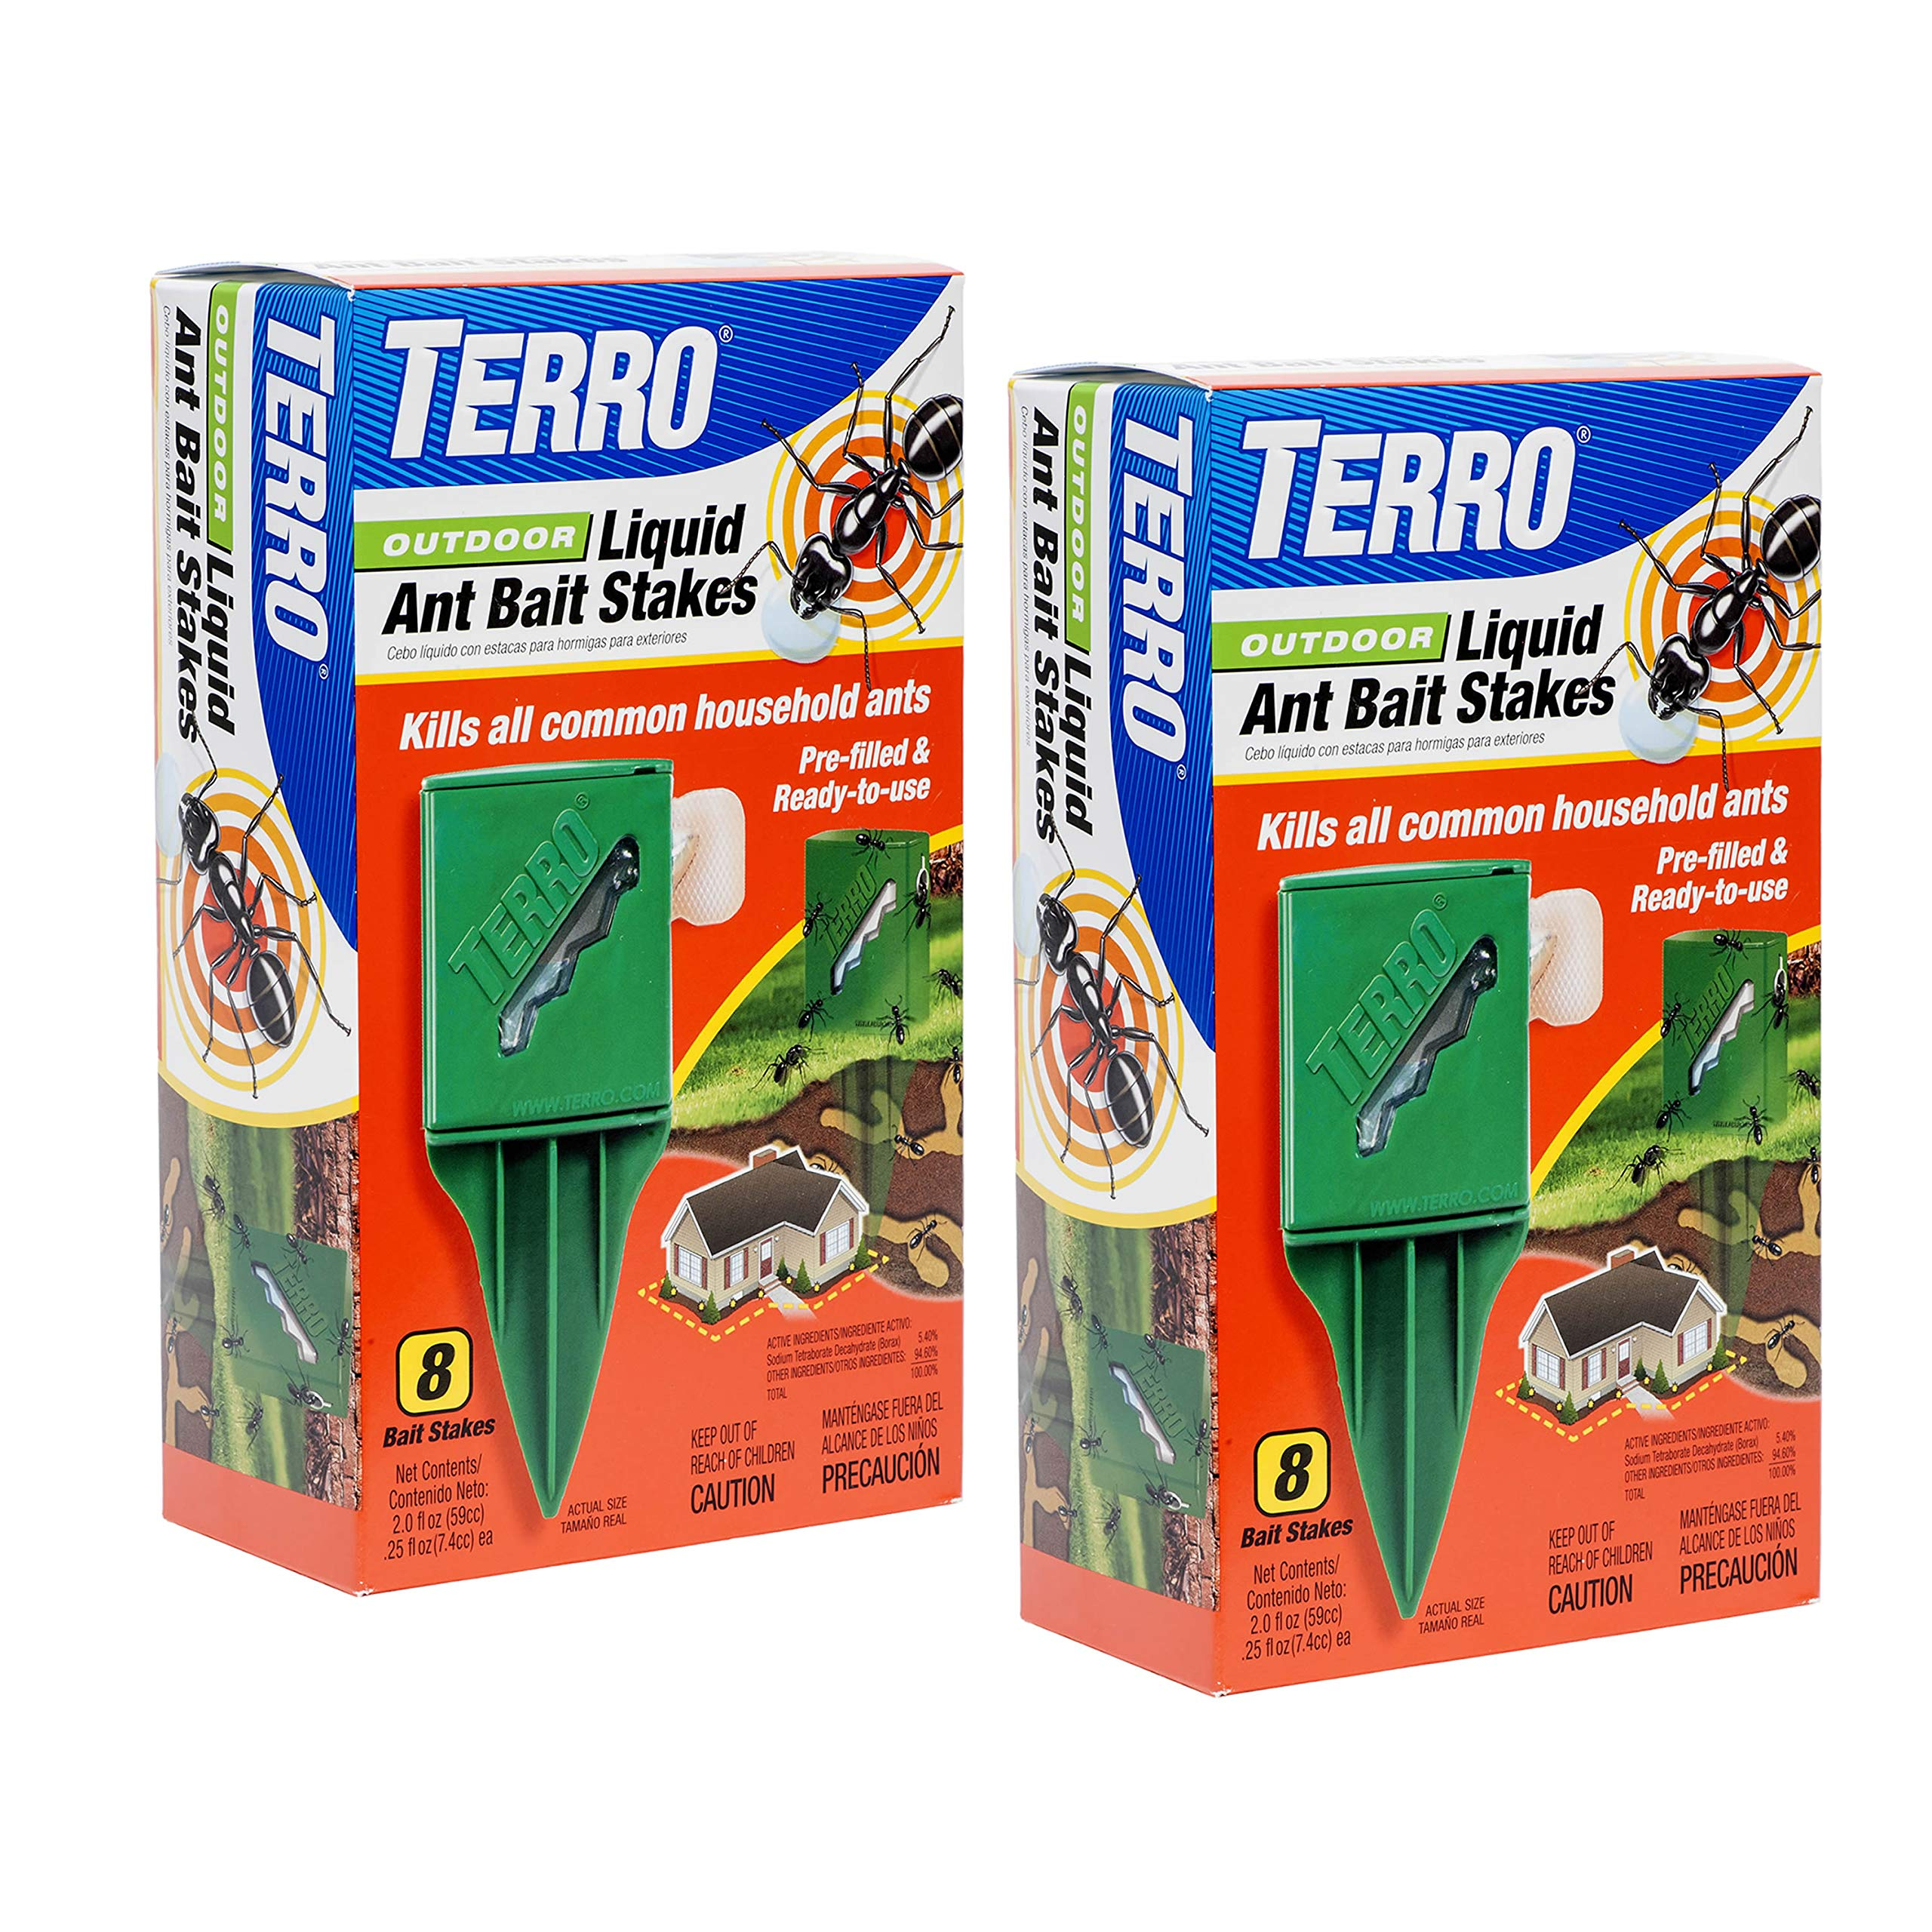 TERRO T1812SR Outdoor Liquid Ant Bait Stakes-2 Pack, Clear by Terro